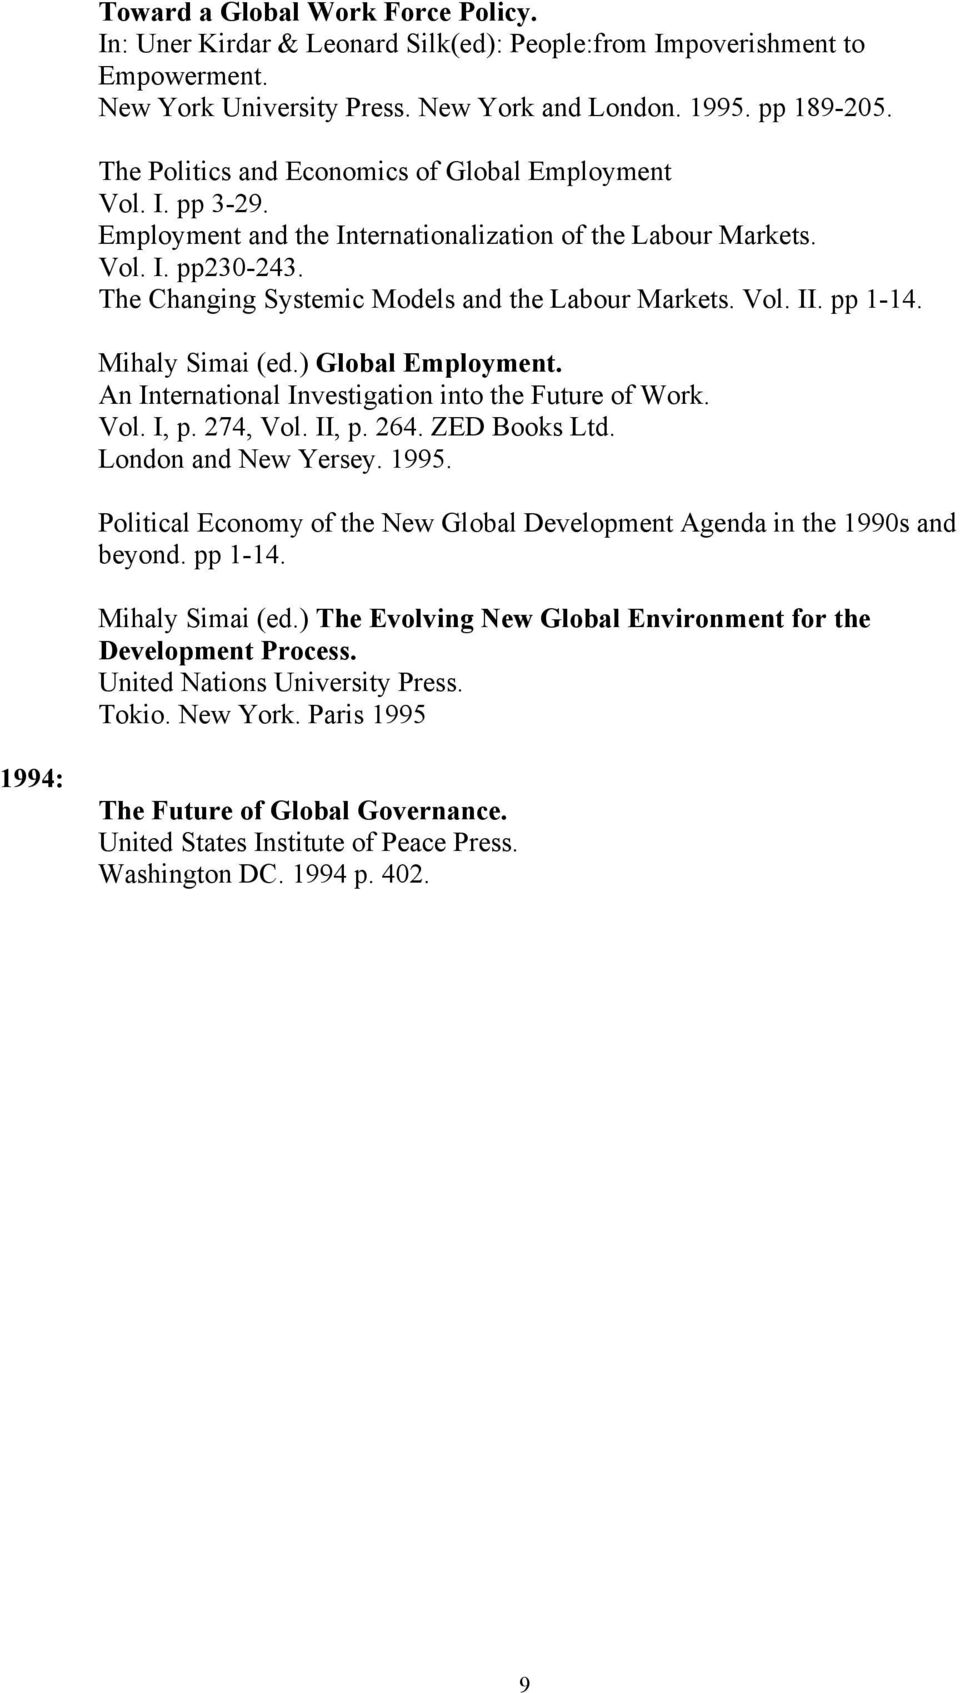 Vol. II. pp 1-14. Mihaly Simai (ed.) Global Employment. An International Investigation into the Future of Work. Vol. I, p. 274, Vol. II, p. 264. ZED Books Ltd. London and New Yersey. 1995.